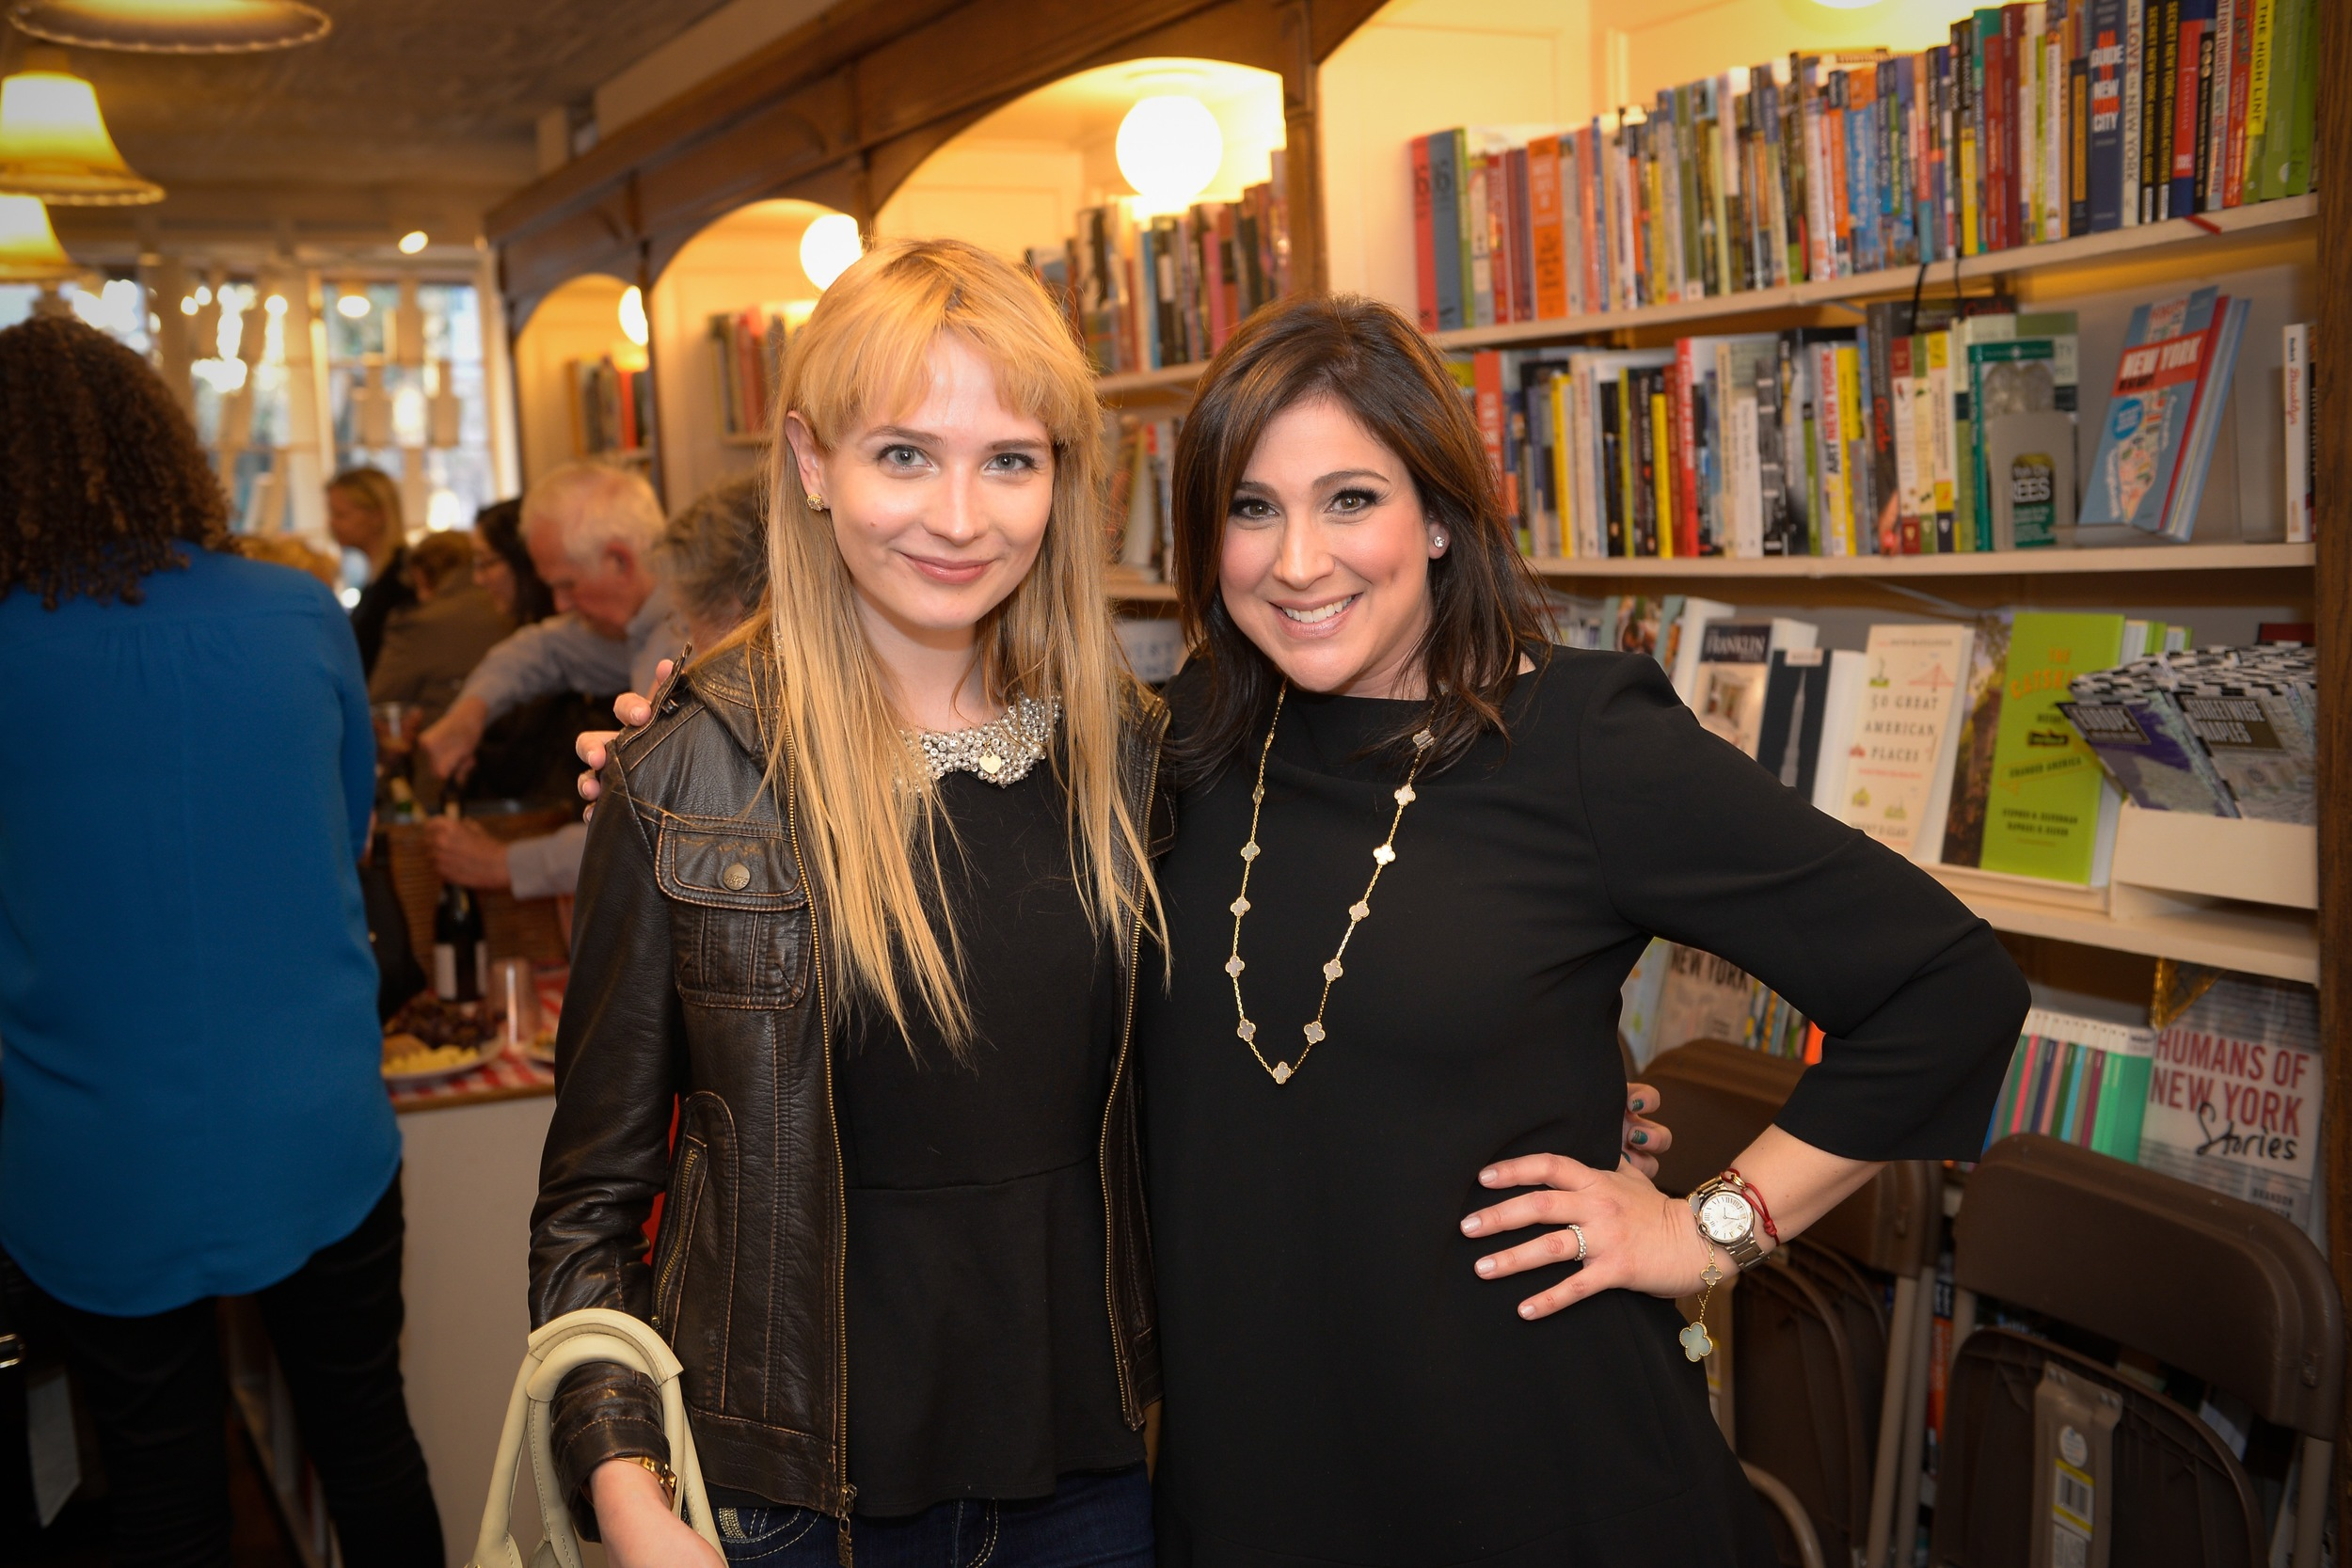 With author Christine Reilly